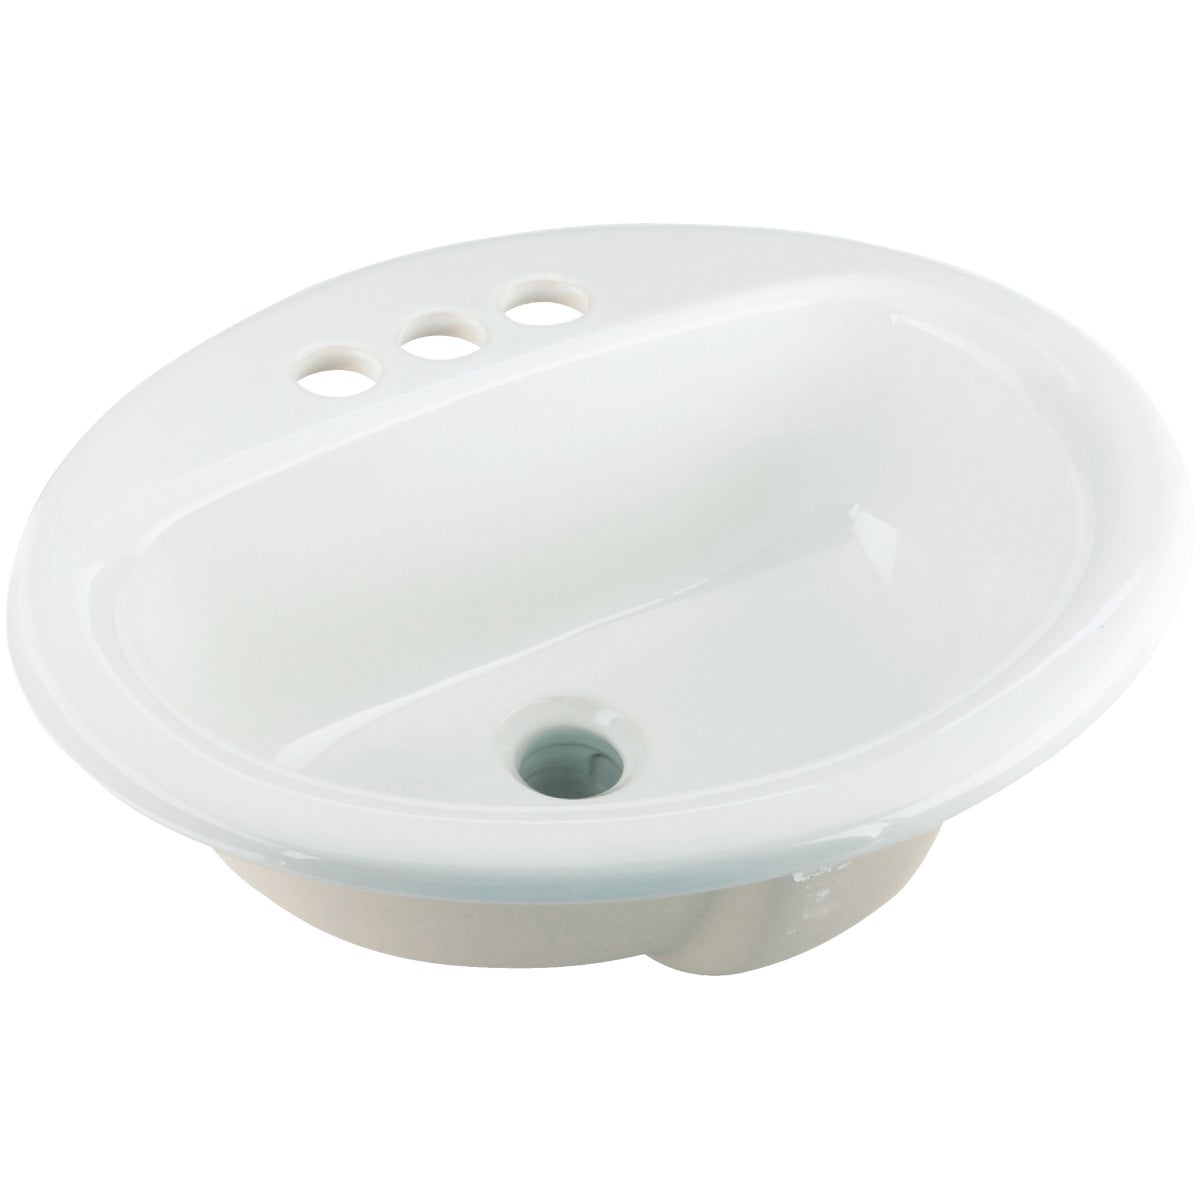 Mansfield Plumbing WHT OVAL LAVATORY BOWL 251410000